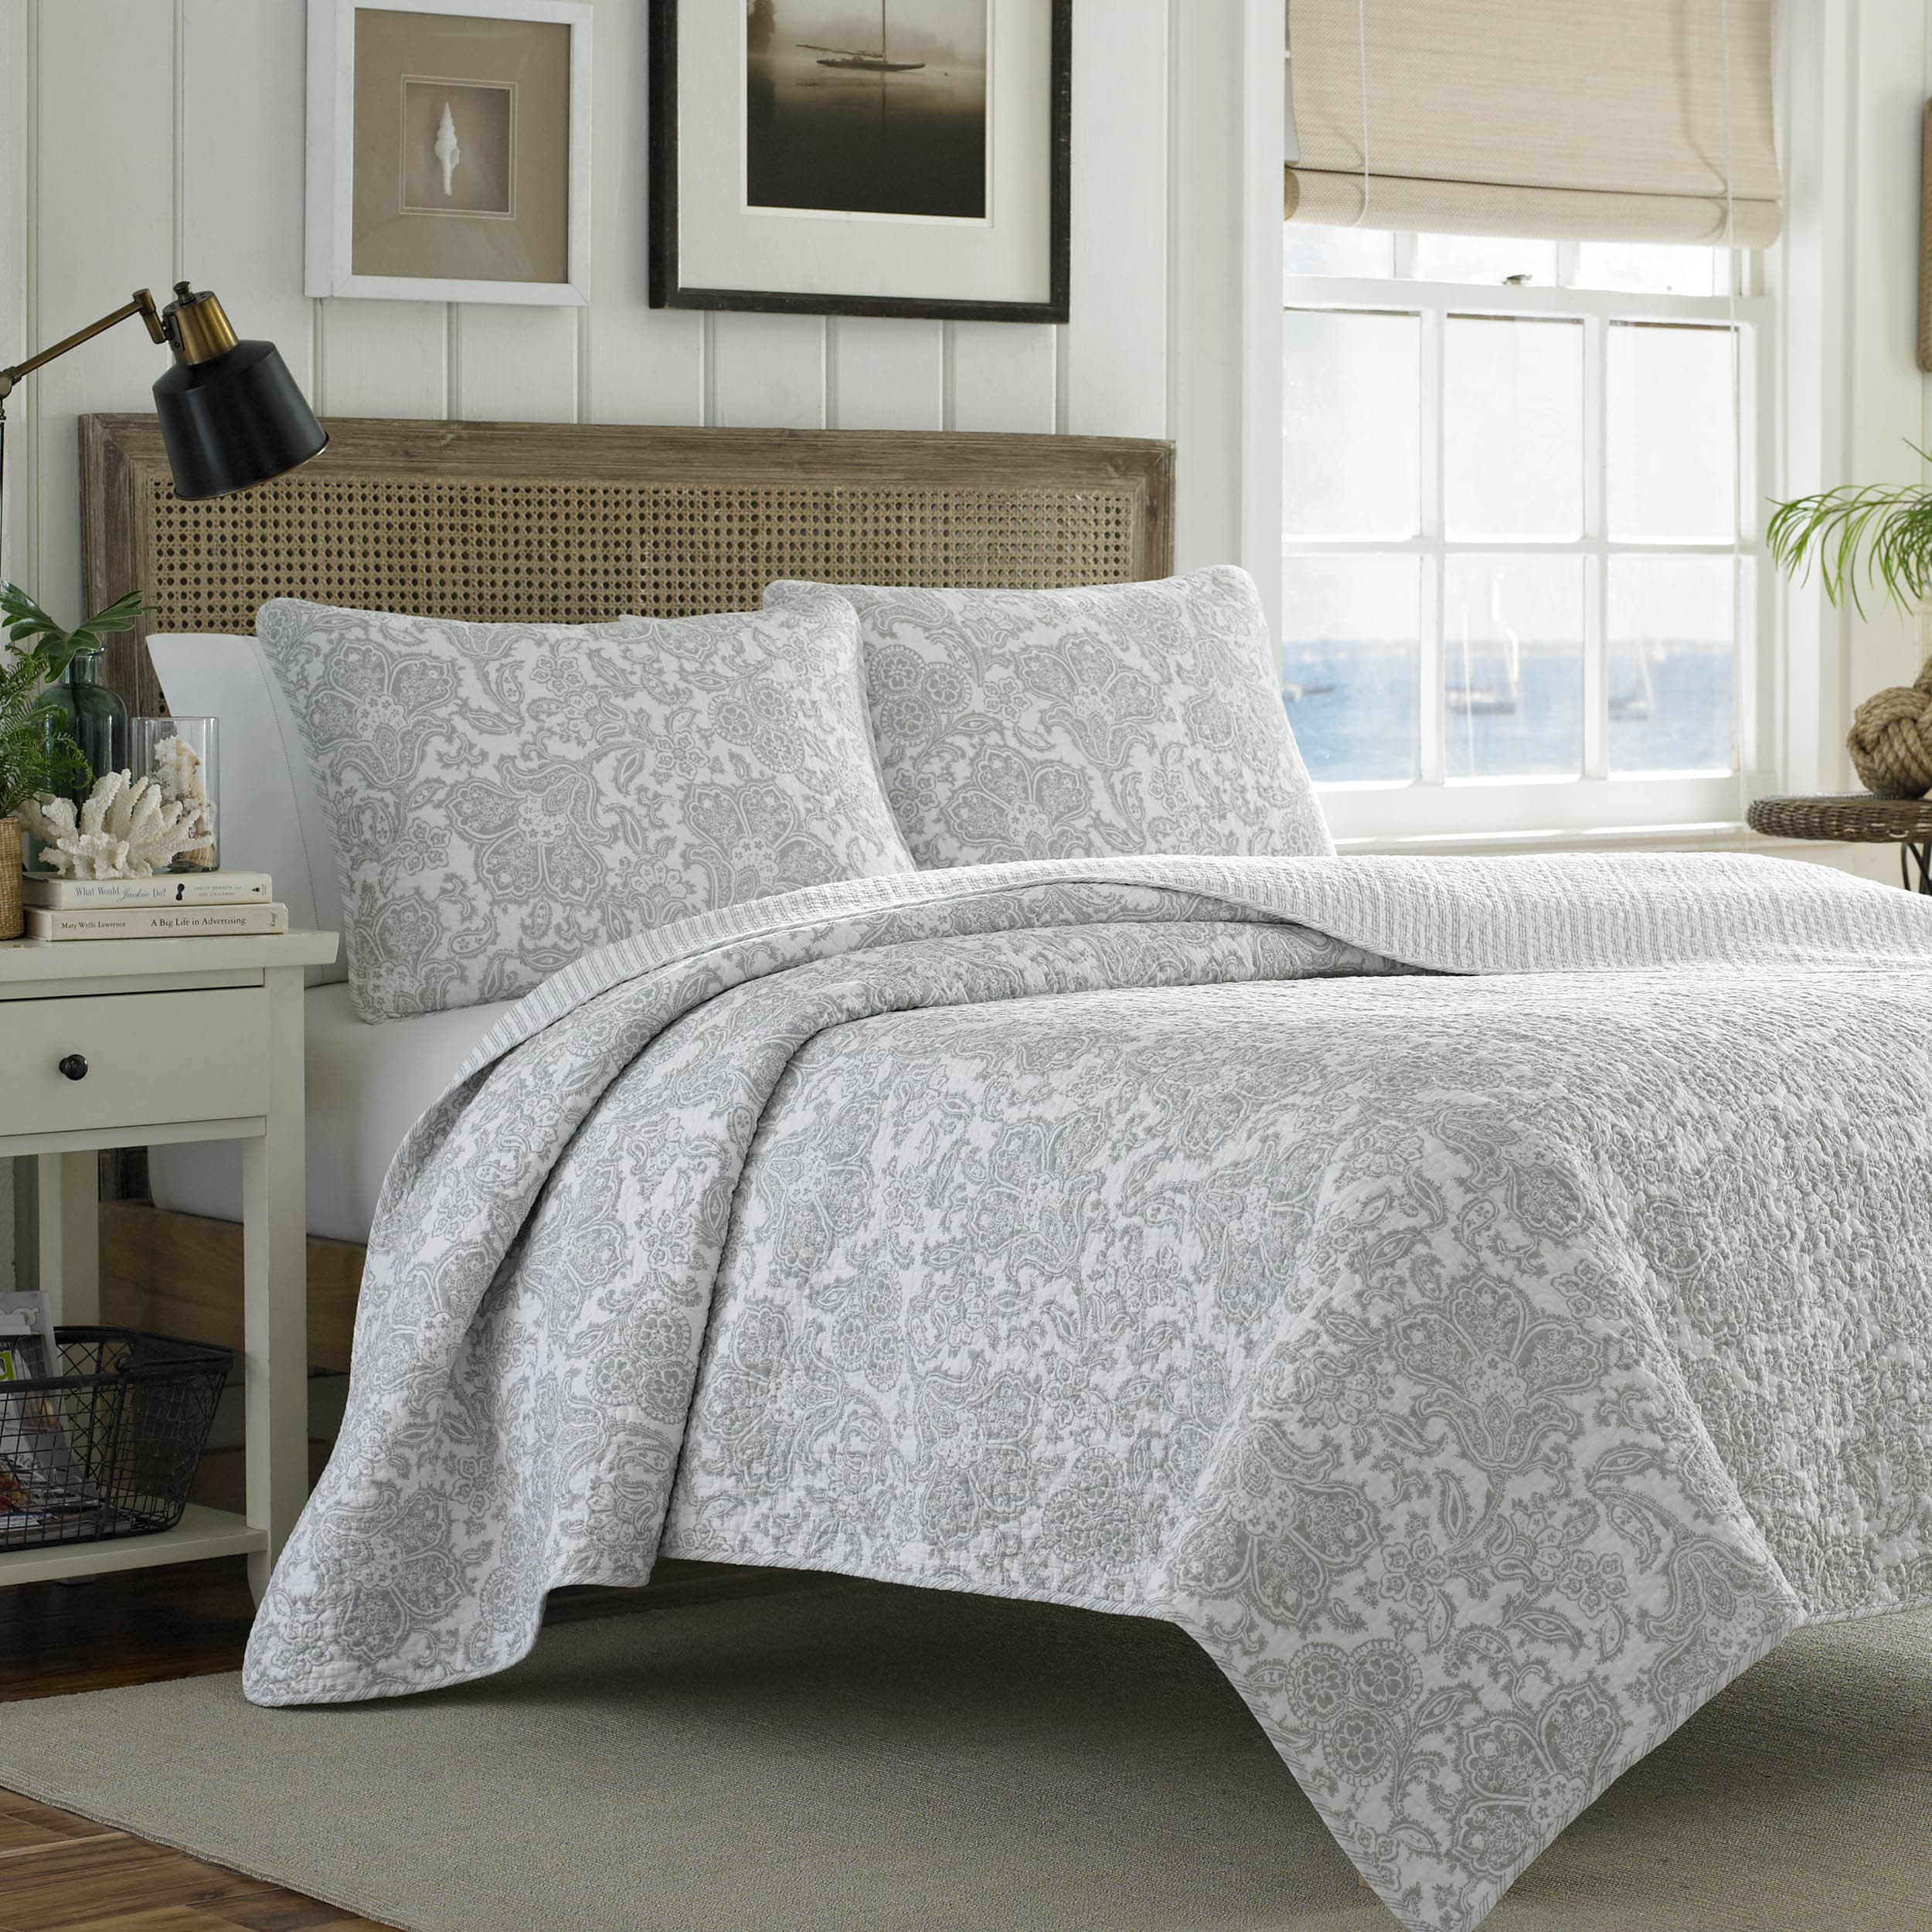 bedding today gulch comforter product on overstock set quilt sale bath gravel free shipping tommy king bahama